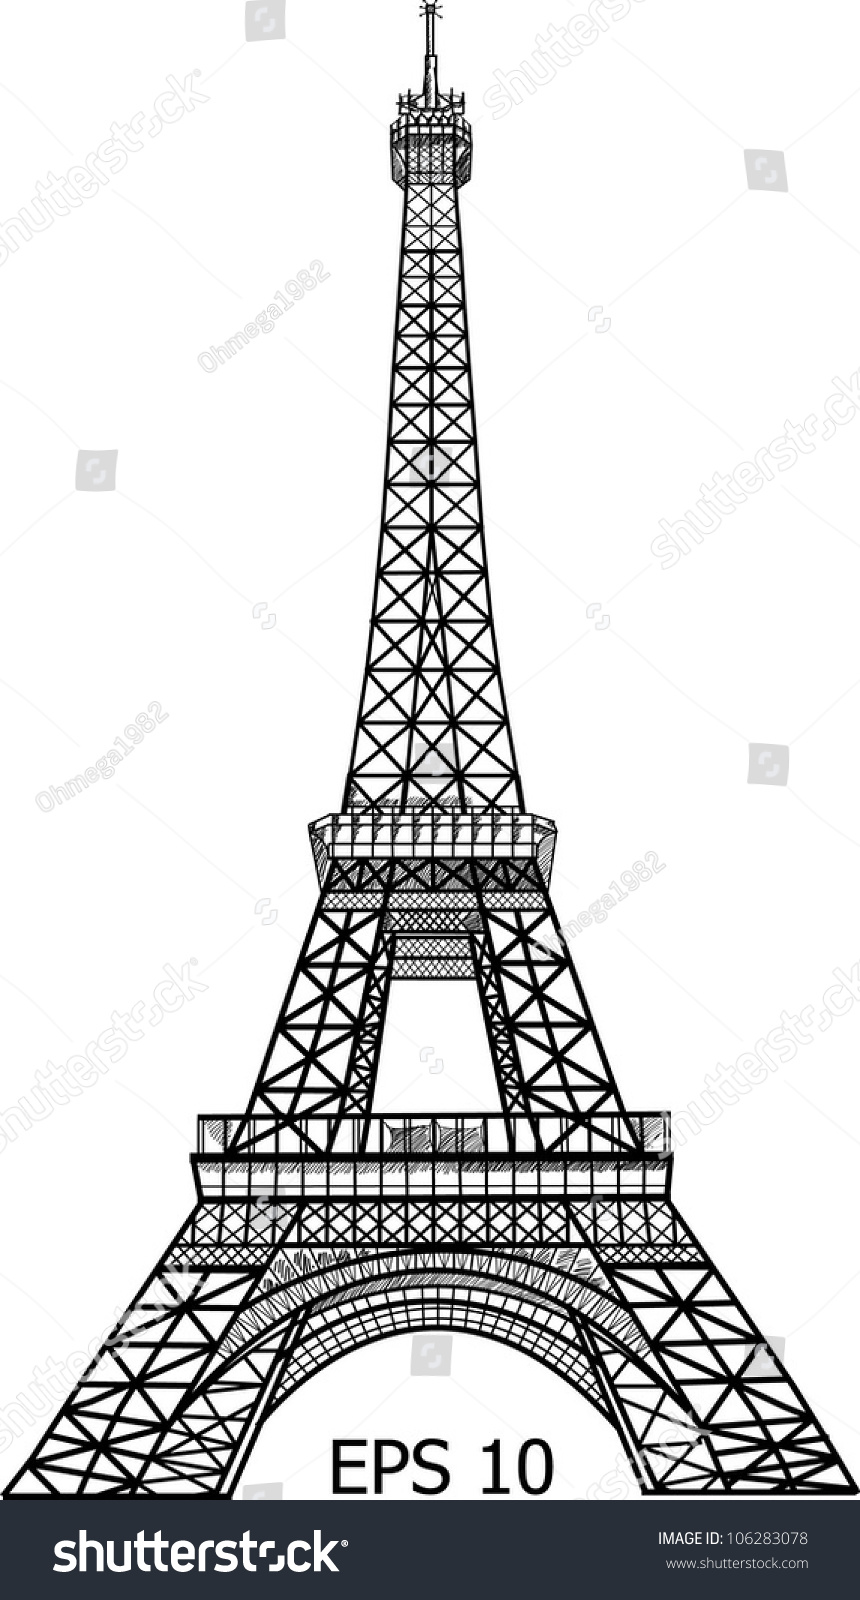 Eiffel tower paris vector illustration eps stock vector 106283078 eiffel tower in paris vector illustration eps 10 thecheapjerseys Gallery